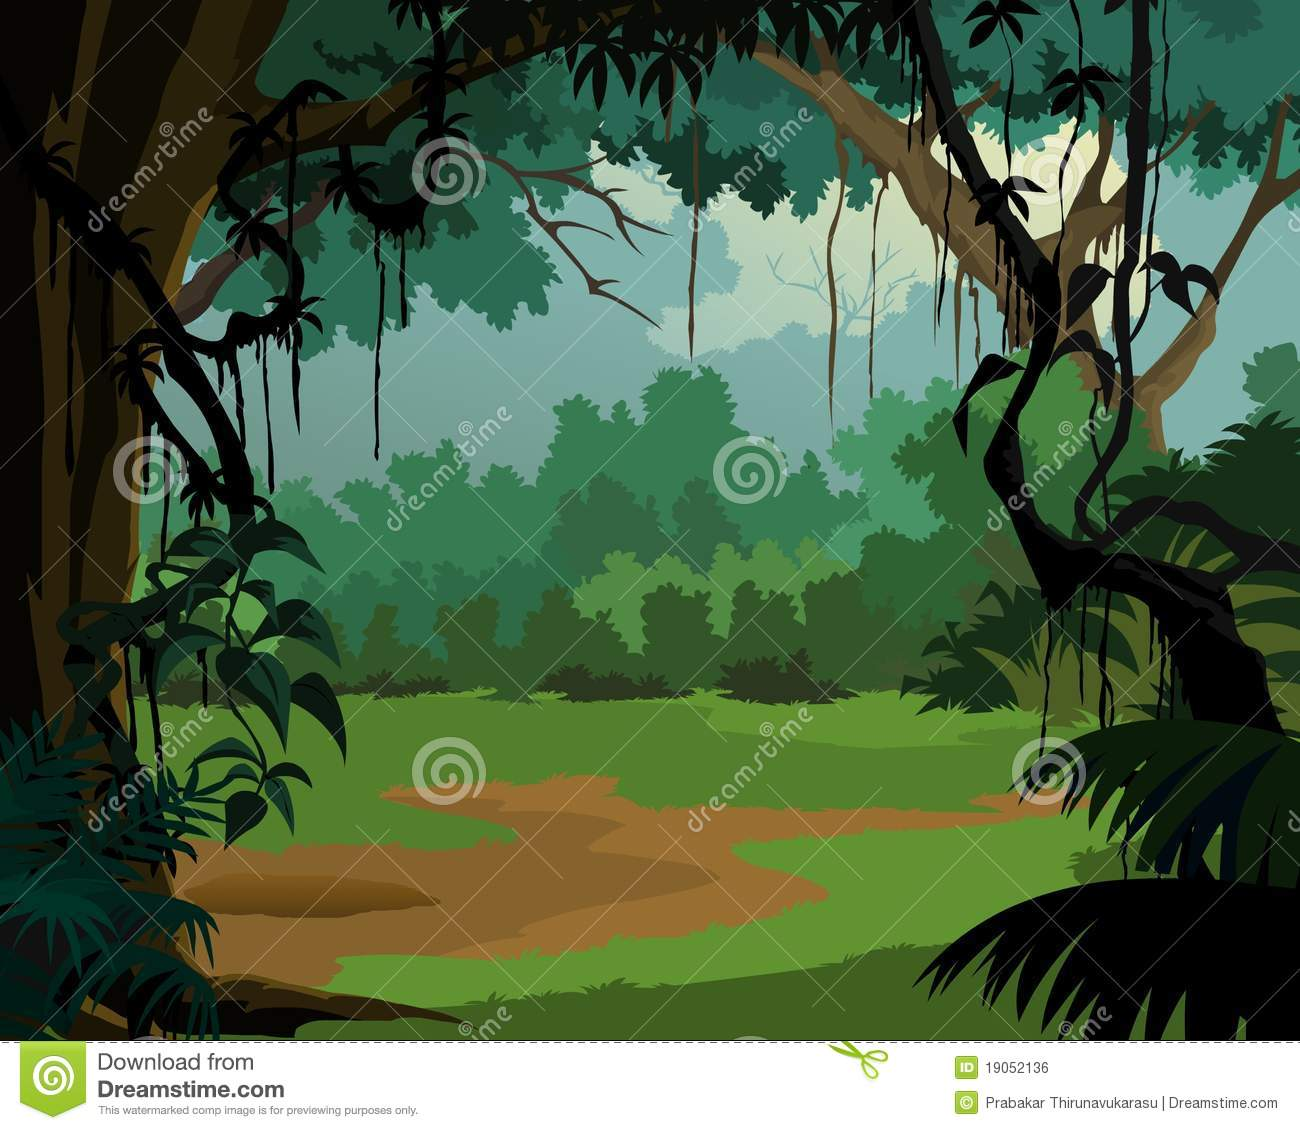 fond de jungle paysage plaisant illustration stock illustration du dense ville 19052136. Black Bedroom Furniture Sets. Home Design Ideas